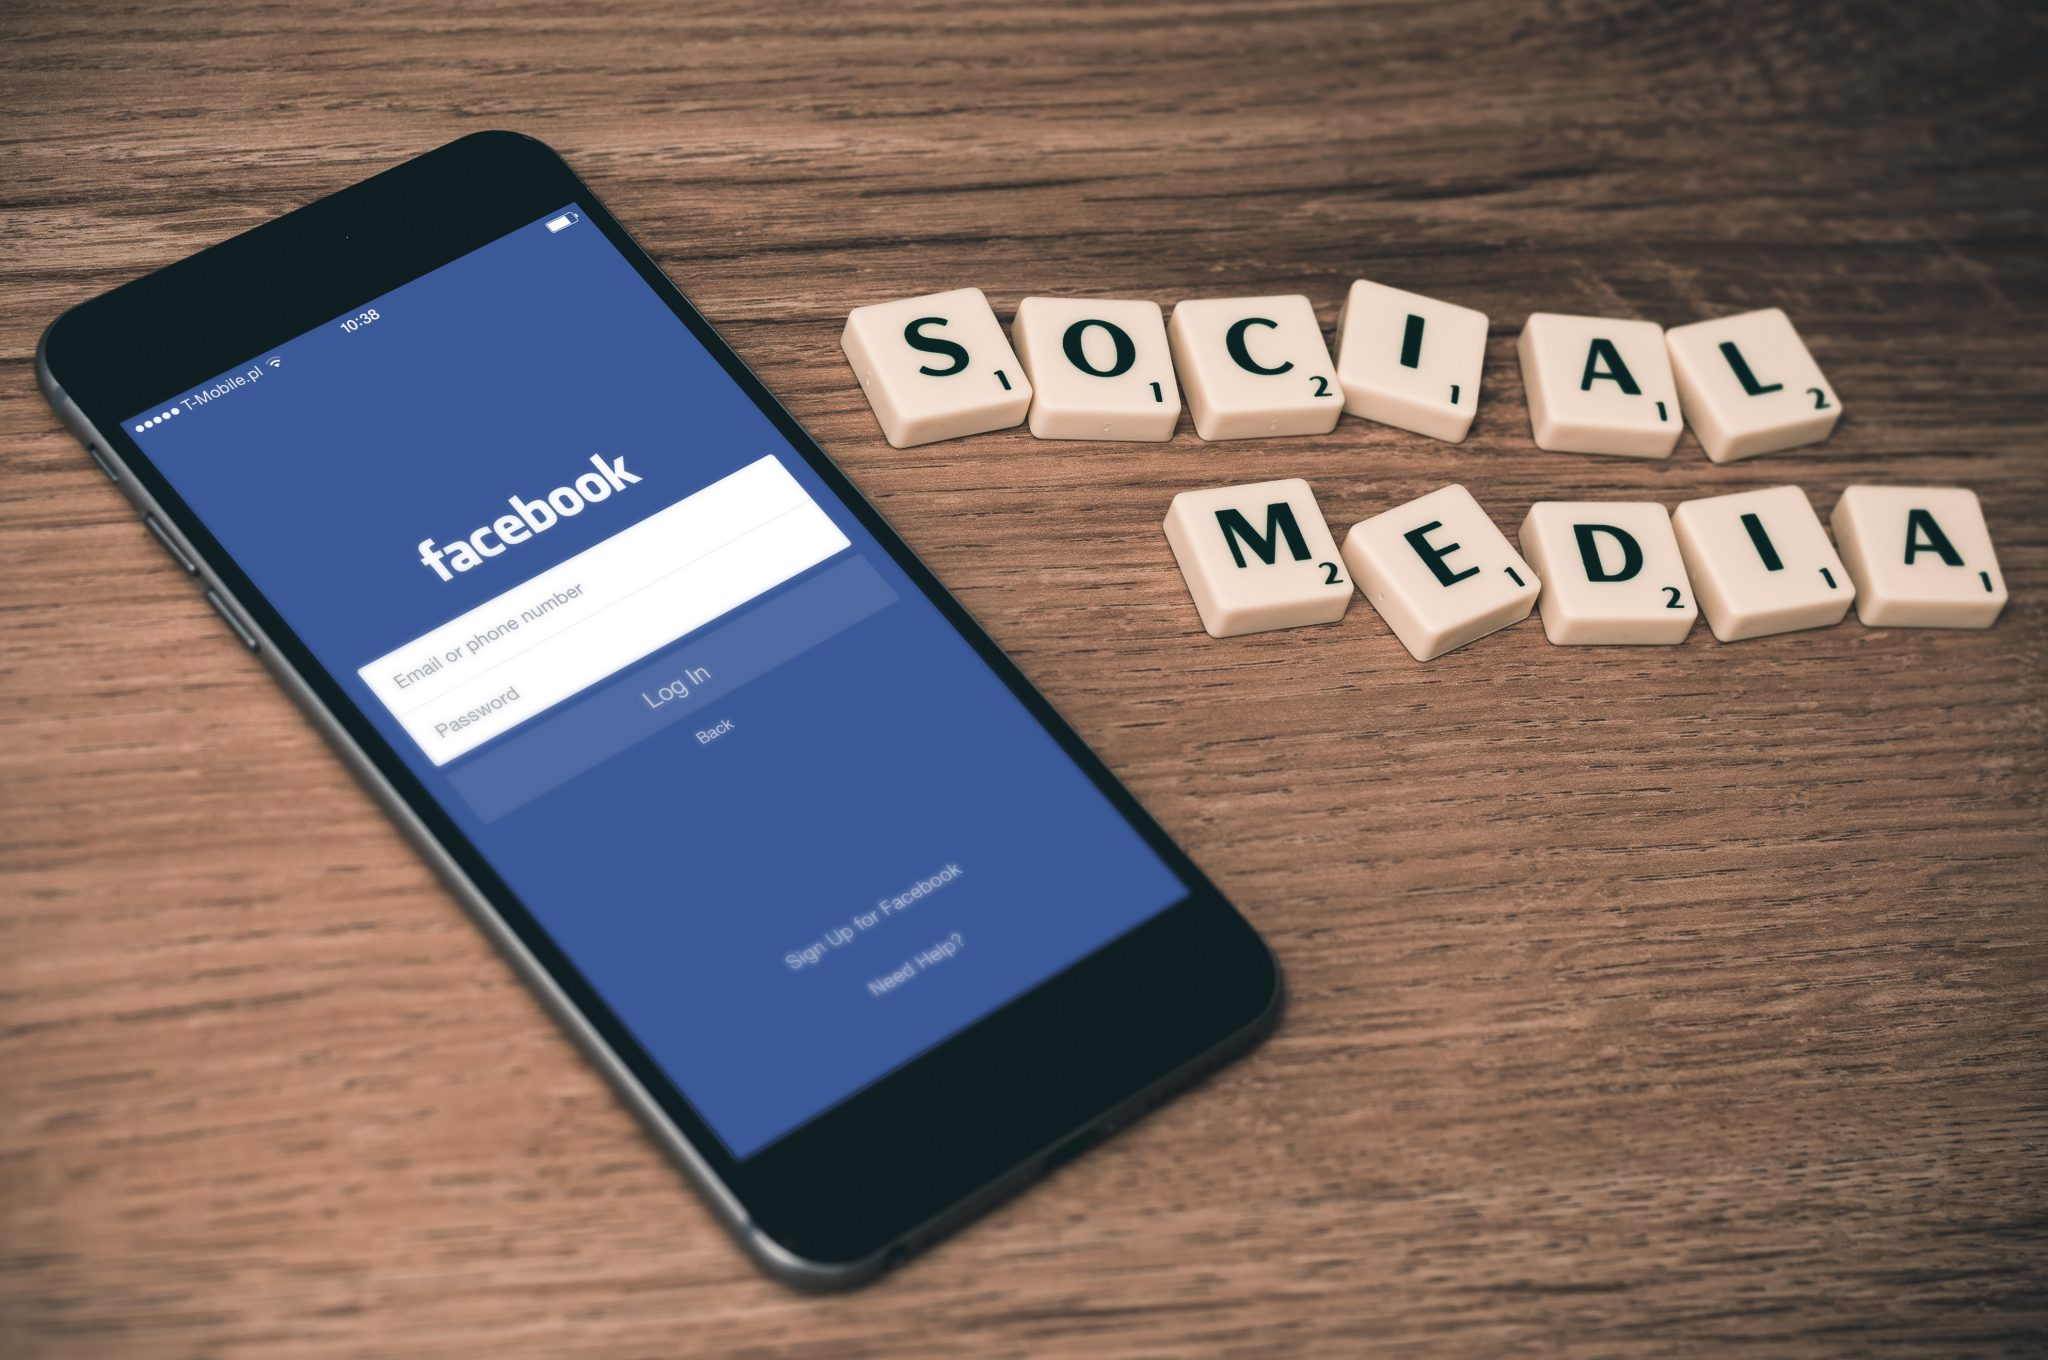 10 Simple Ways to Use Facebook to Promote Your Small Business